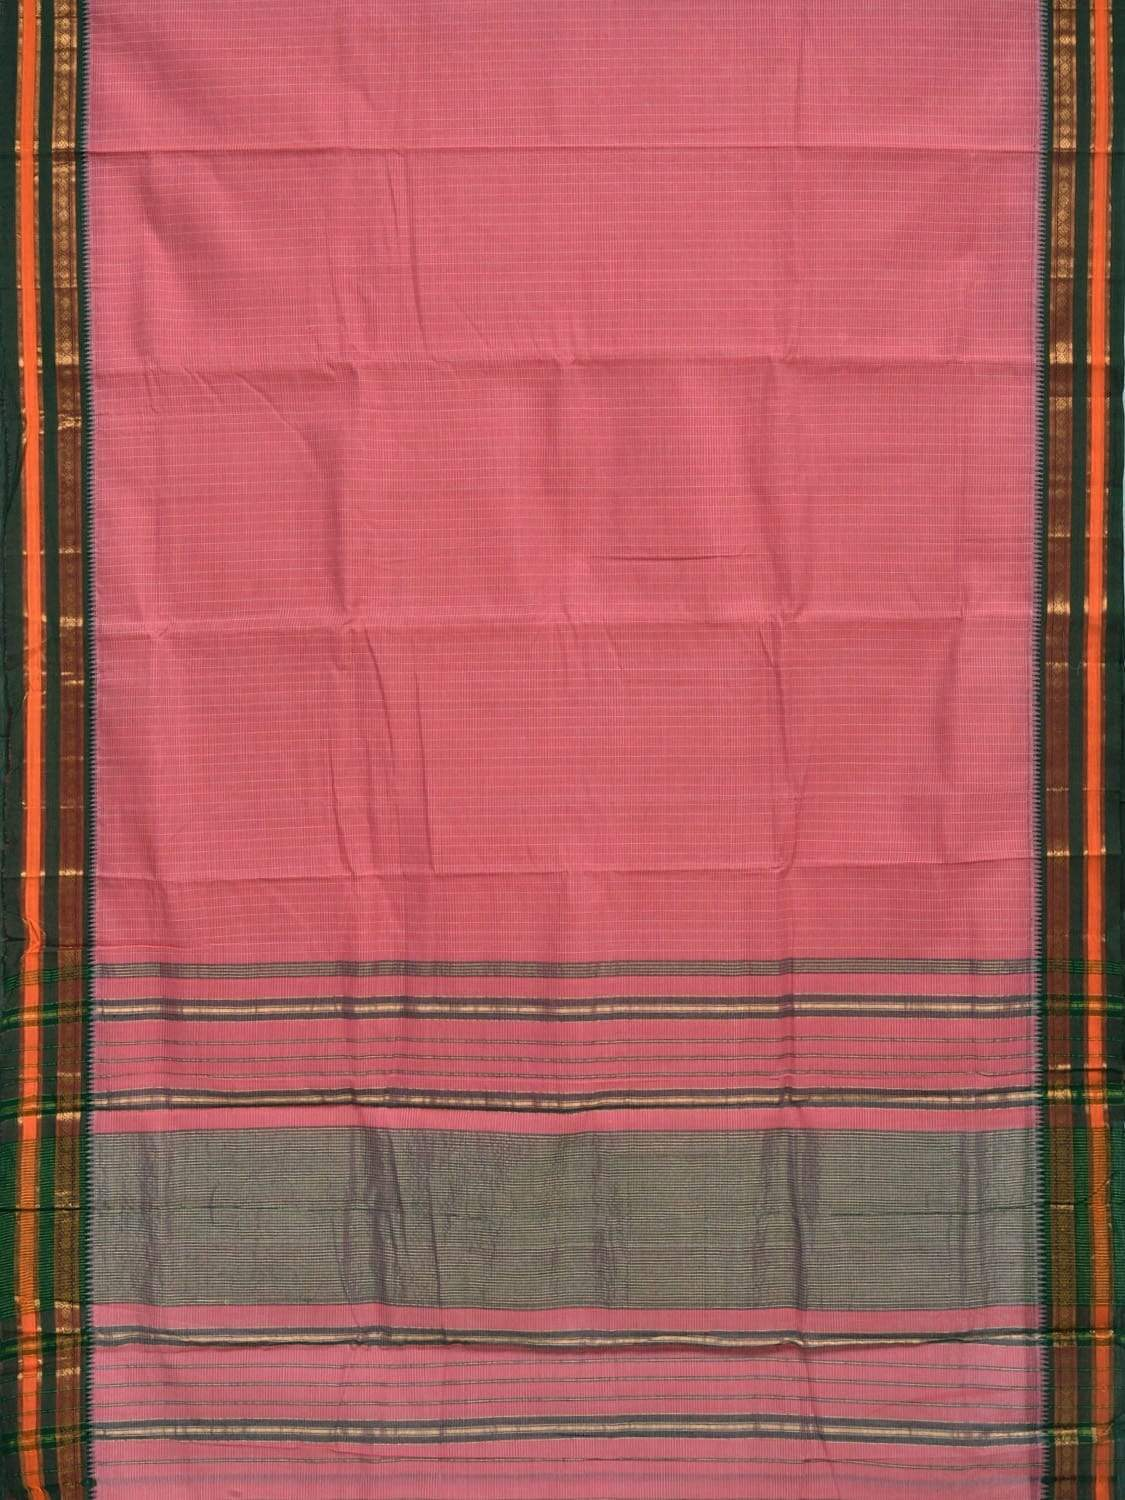 Baby Pink Narayanpet Cotton Handloom Saree with Checks and Border Design No Blouse np0245